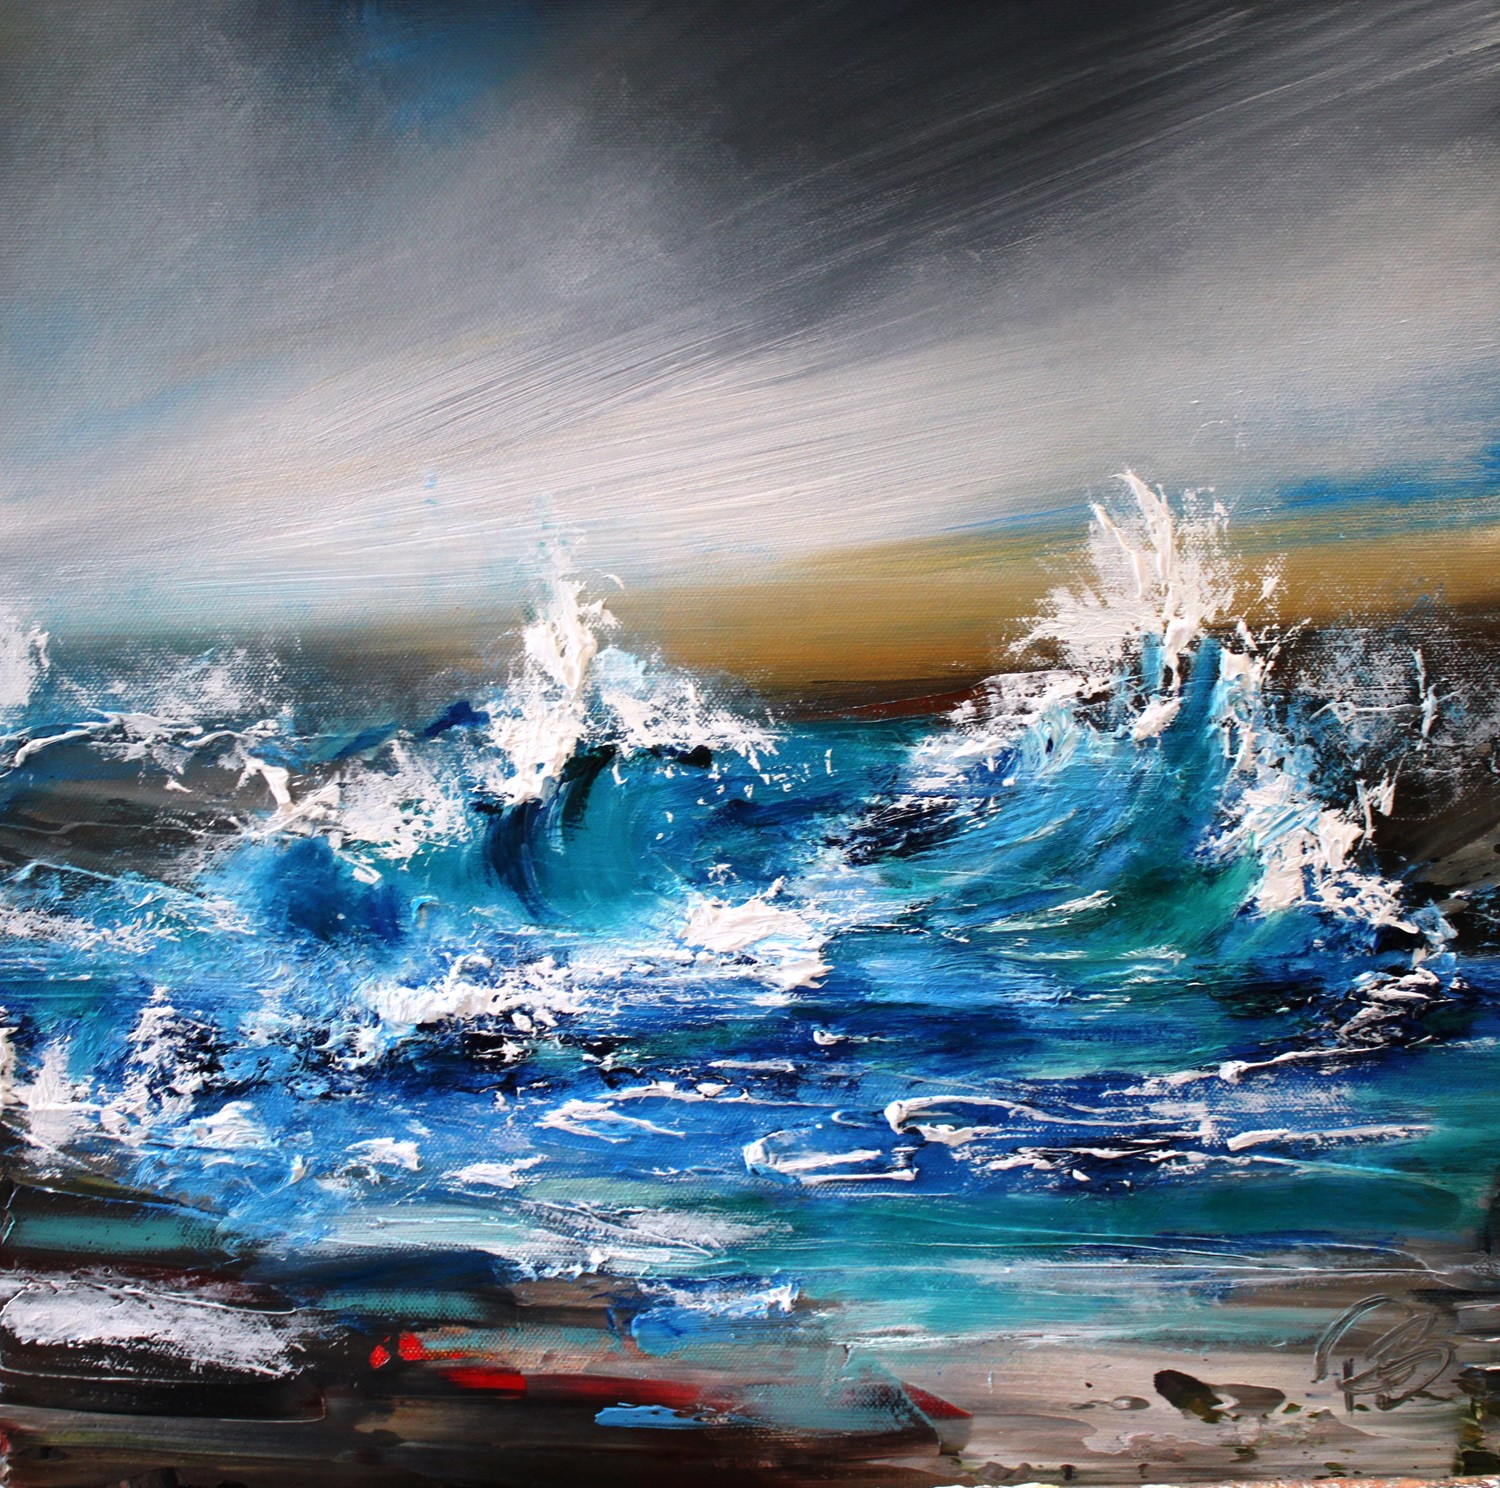 'Stormy Waves' by artist Rosanne Barr